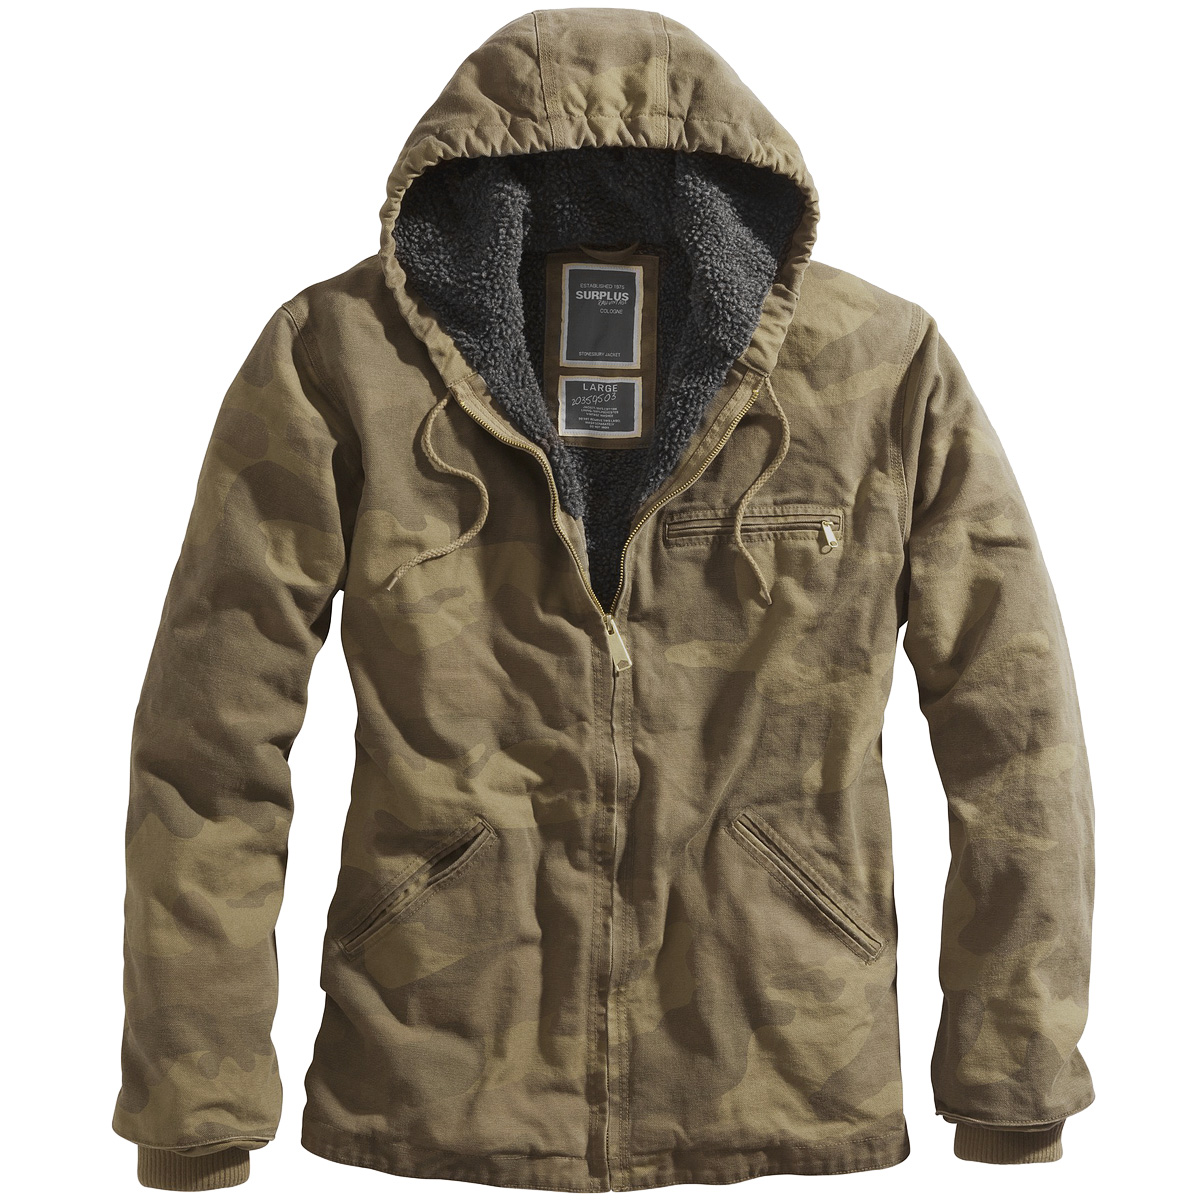 Mens Jackets. As outerwear specialists we have a premium selection of men's jackets. Choose an iconic Superdry leather jacket, on-trend military style, or for a more casual look check out our range of bomber jackets. Hooded Winter SD-Windtrekker Jacket. USD $ more colors. Hooded Winter SD-Windtrekker Jacket. USD $